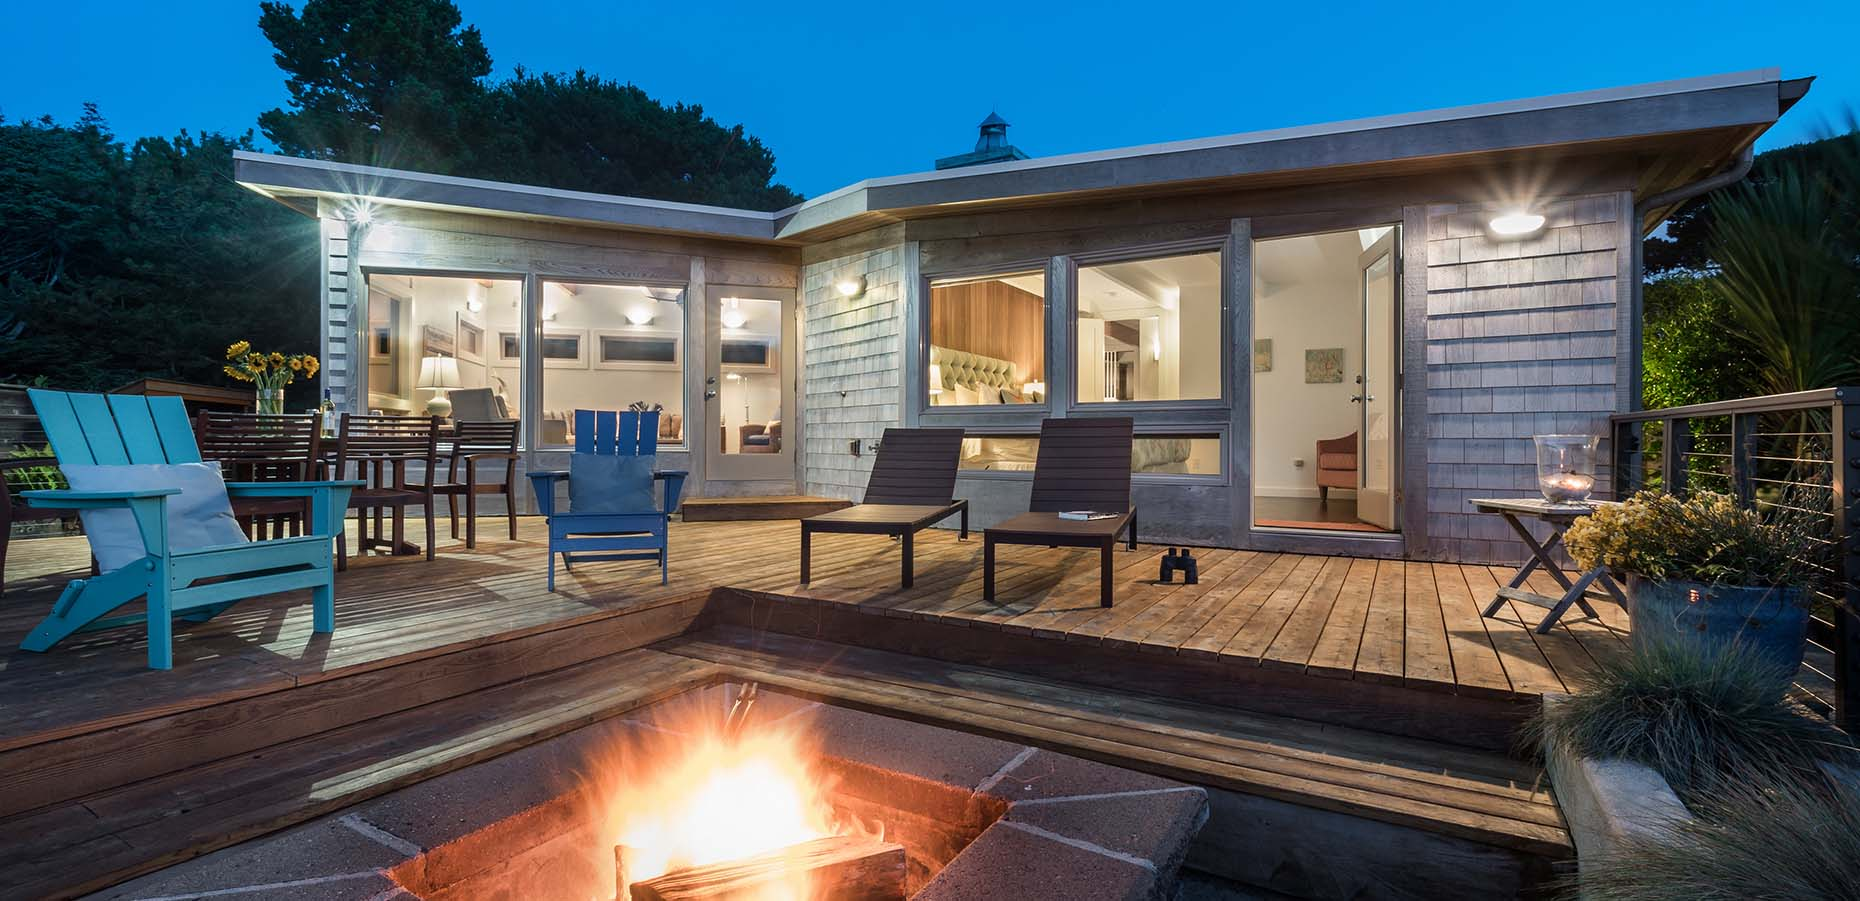 Treehouse Hideaway - Patio and firepit.